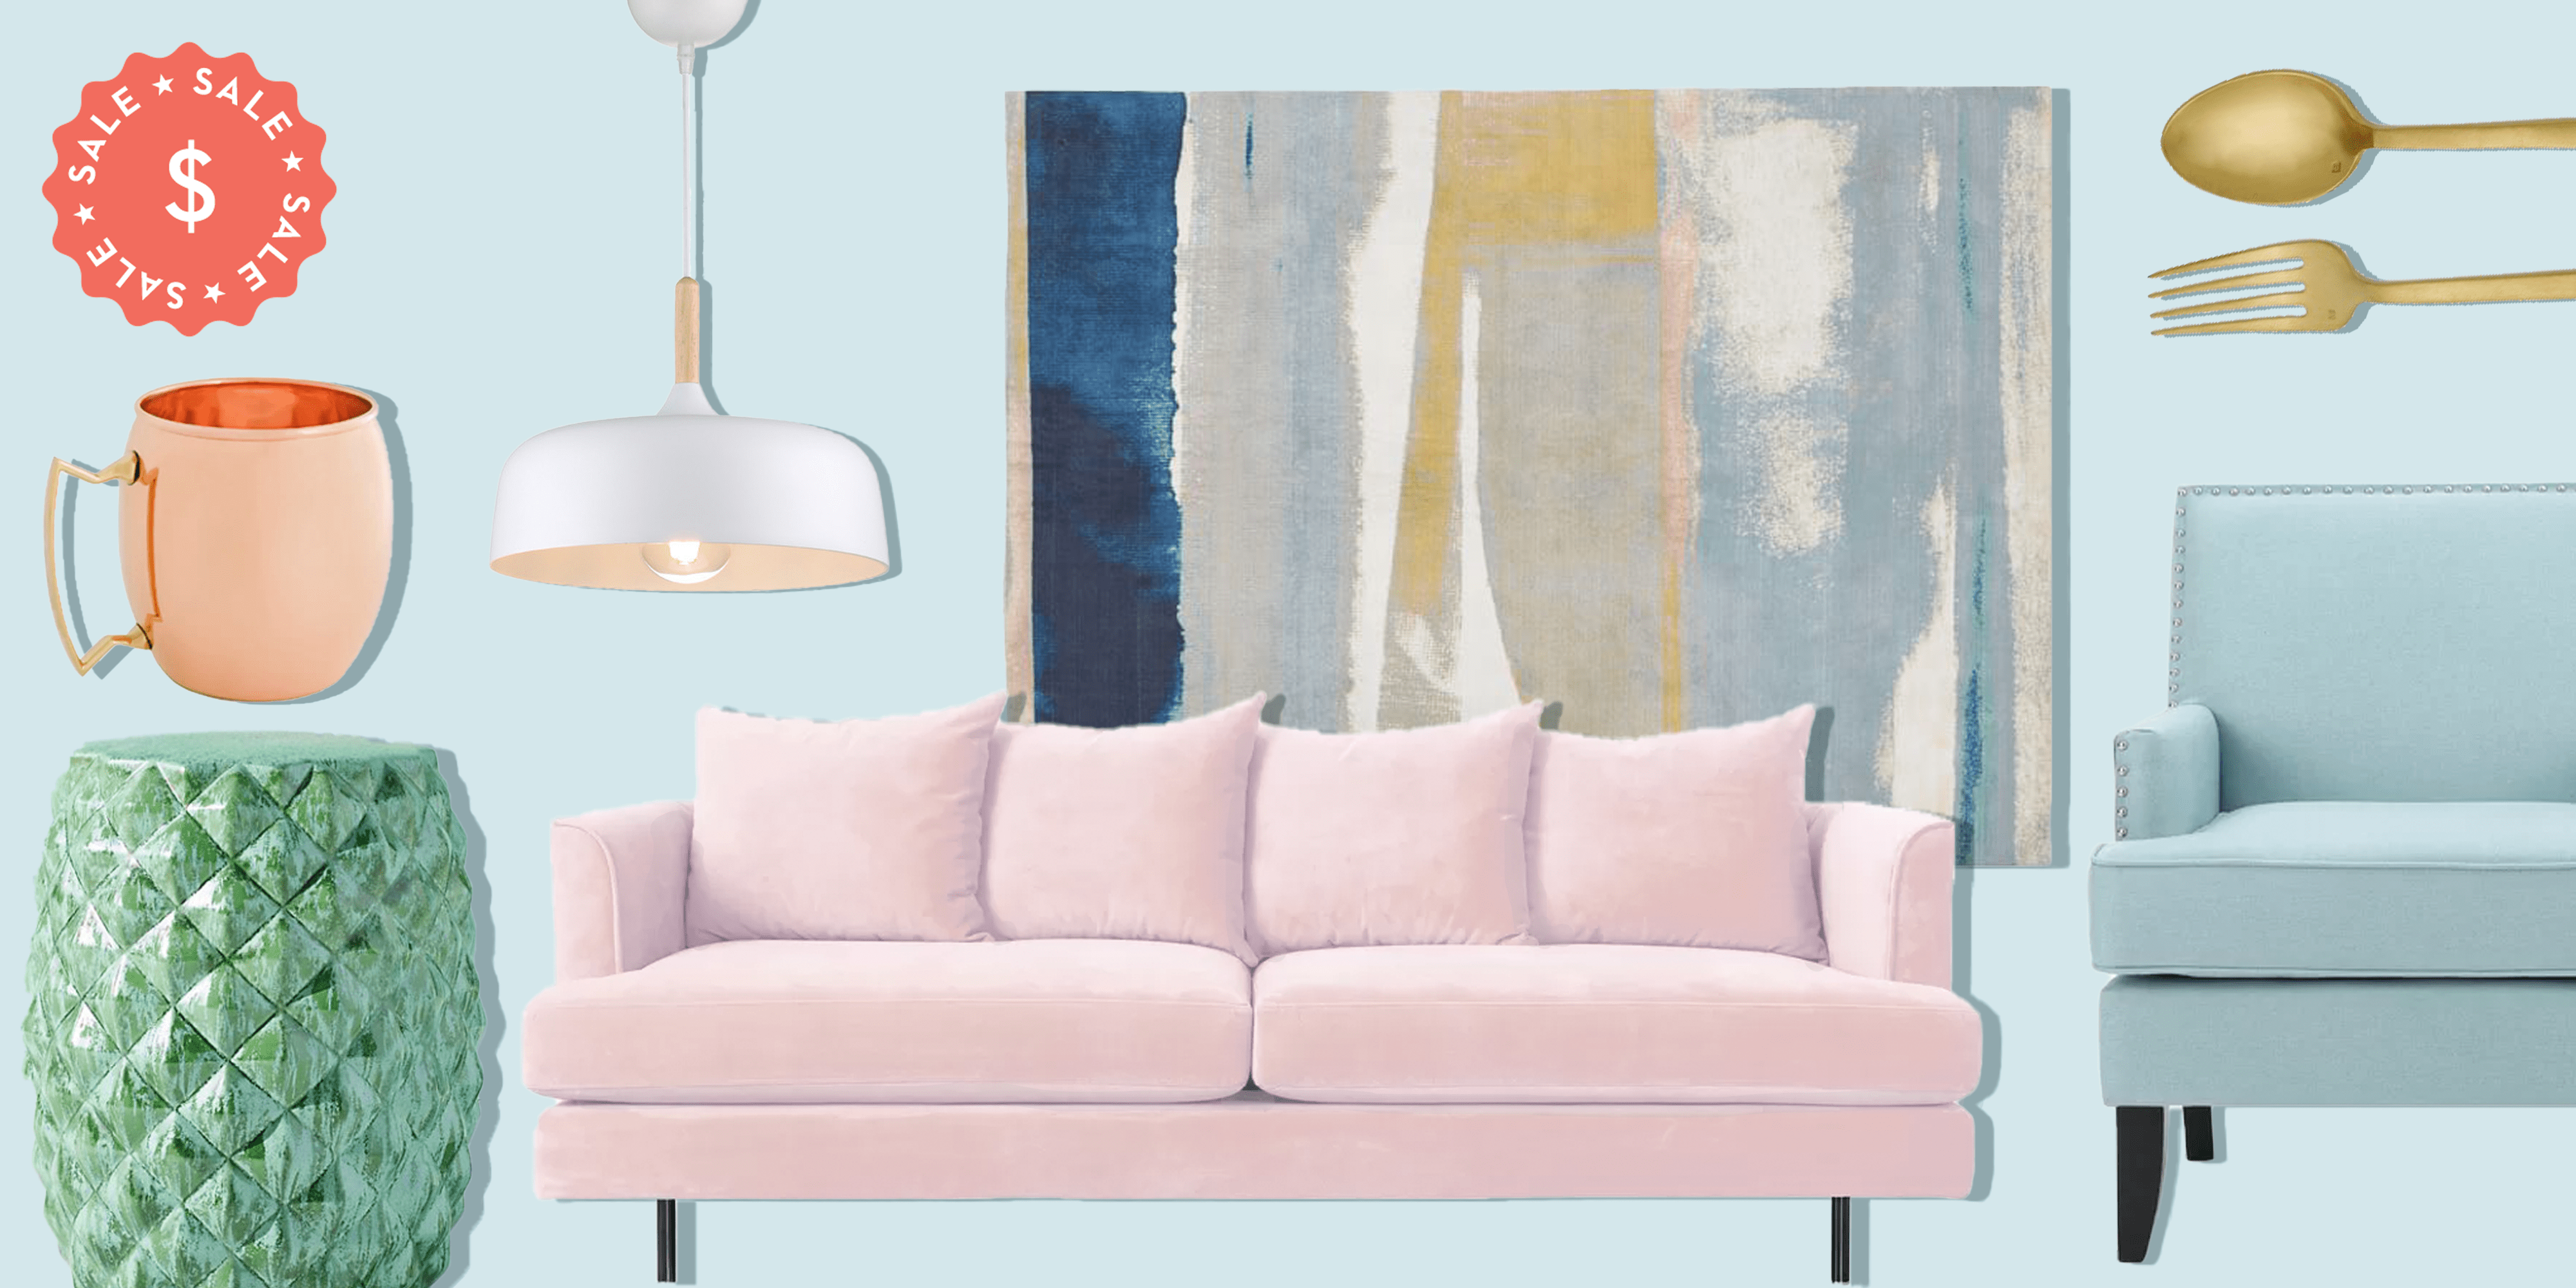 Sofa Take Home Today Shop The Best Memorial Day Furniture Deals And Sales Of 2019